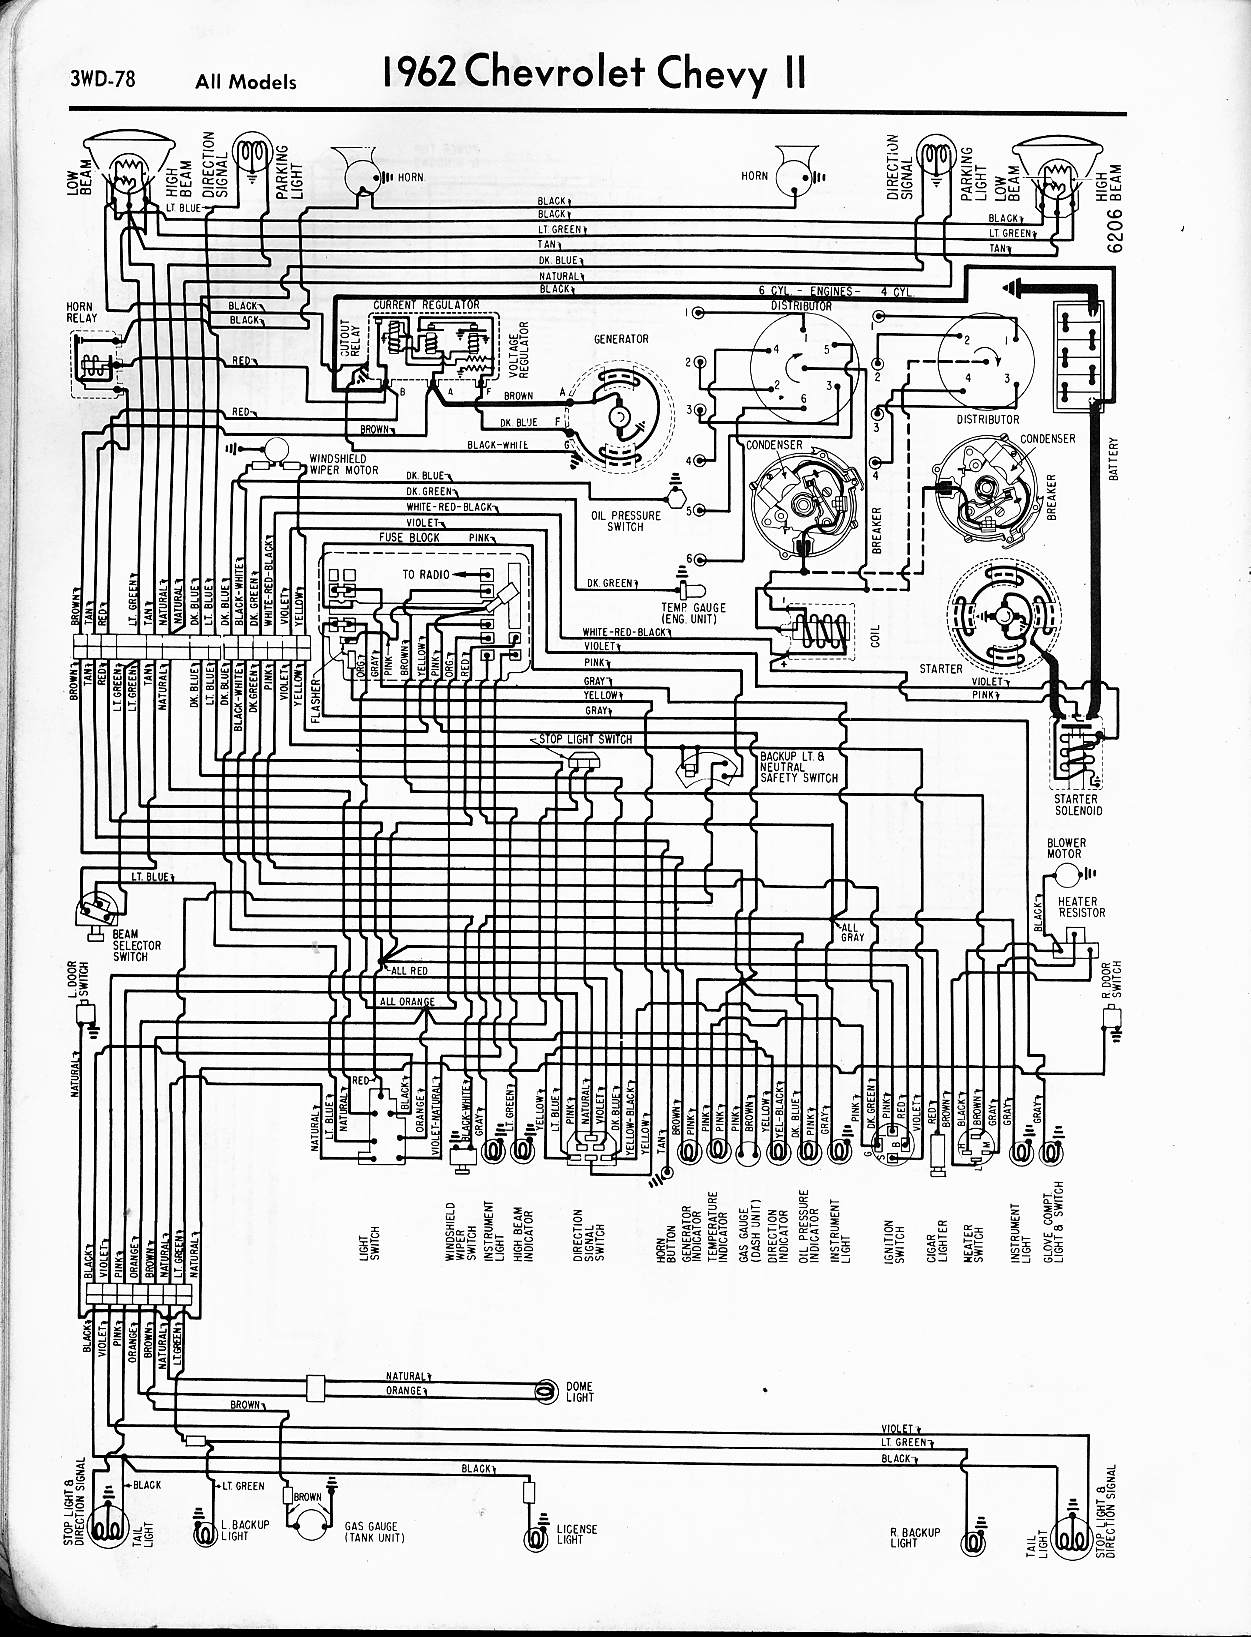 MWireChev62_3WD 078 1962 chevy truck wiring diagram 1960 chevy truck wiring diagram 1962 impala wiring harness at cos-gaming.co